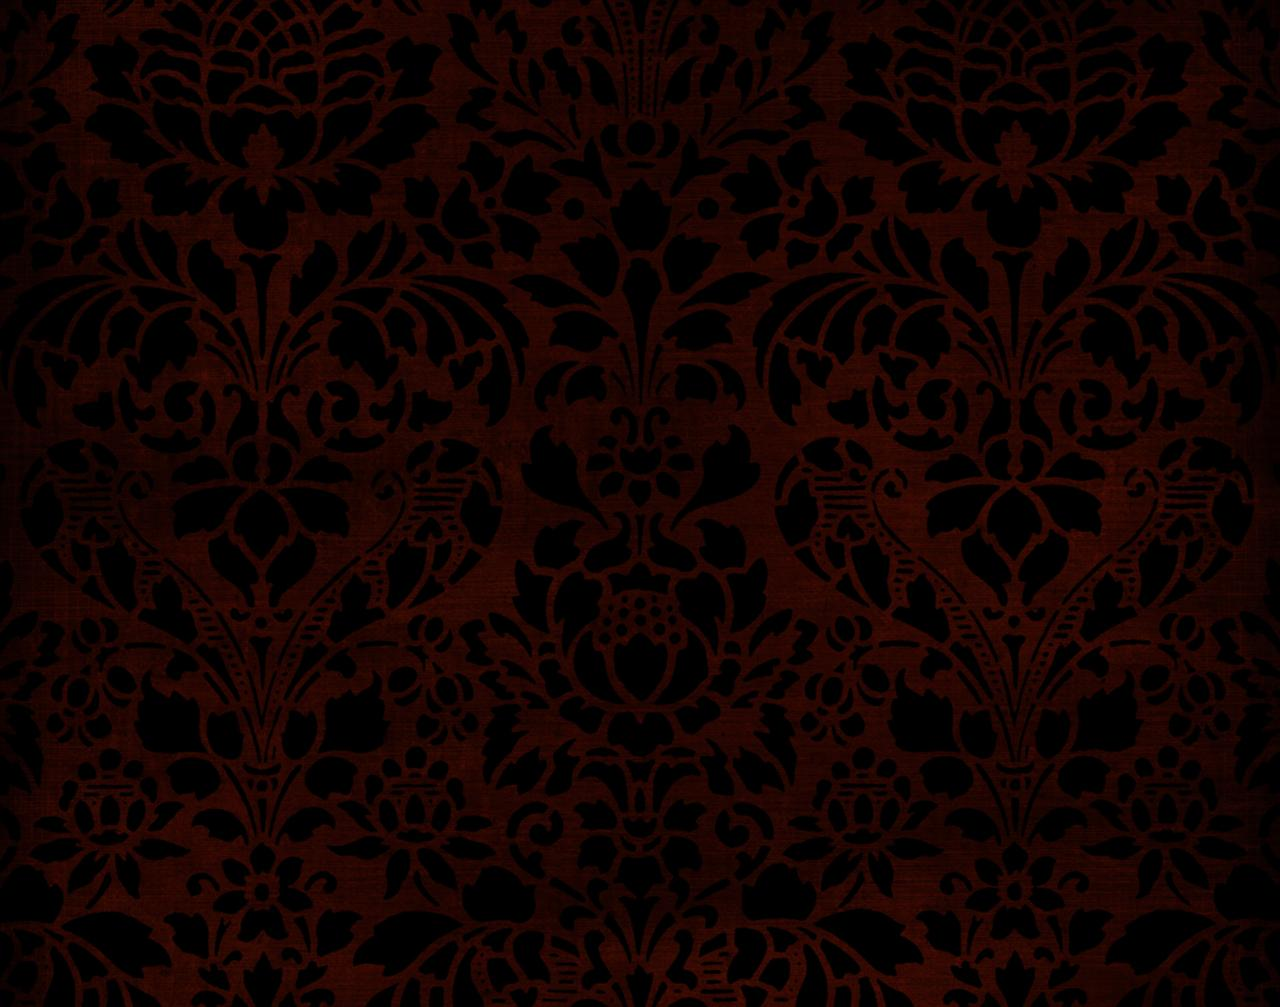 50 dark maroon wallpaper on wallpapersafari dark maroon wallpaper on wallpapersafari